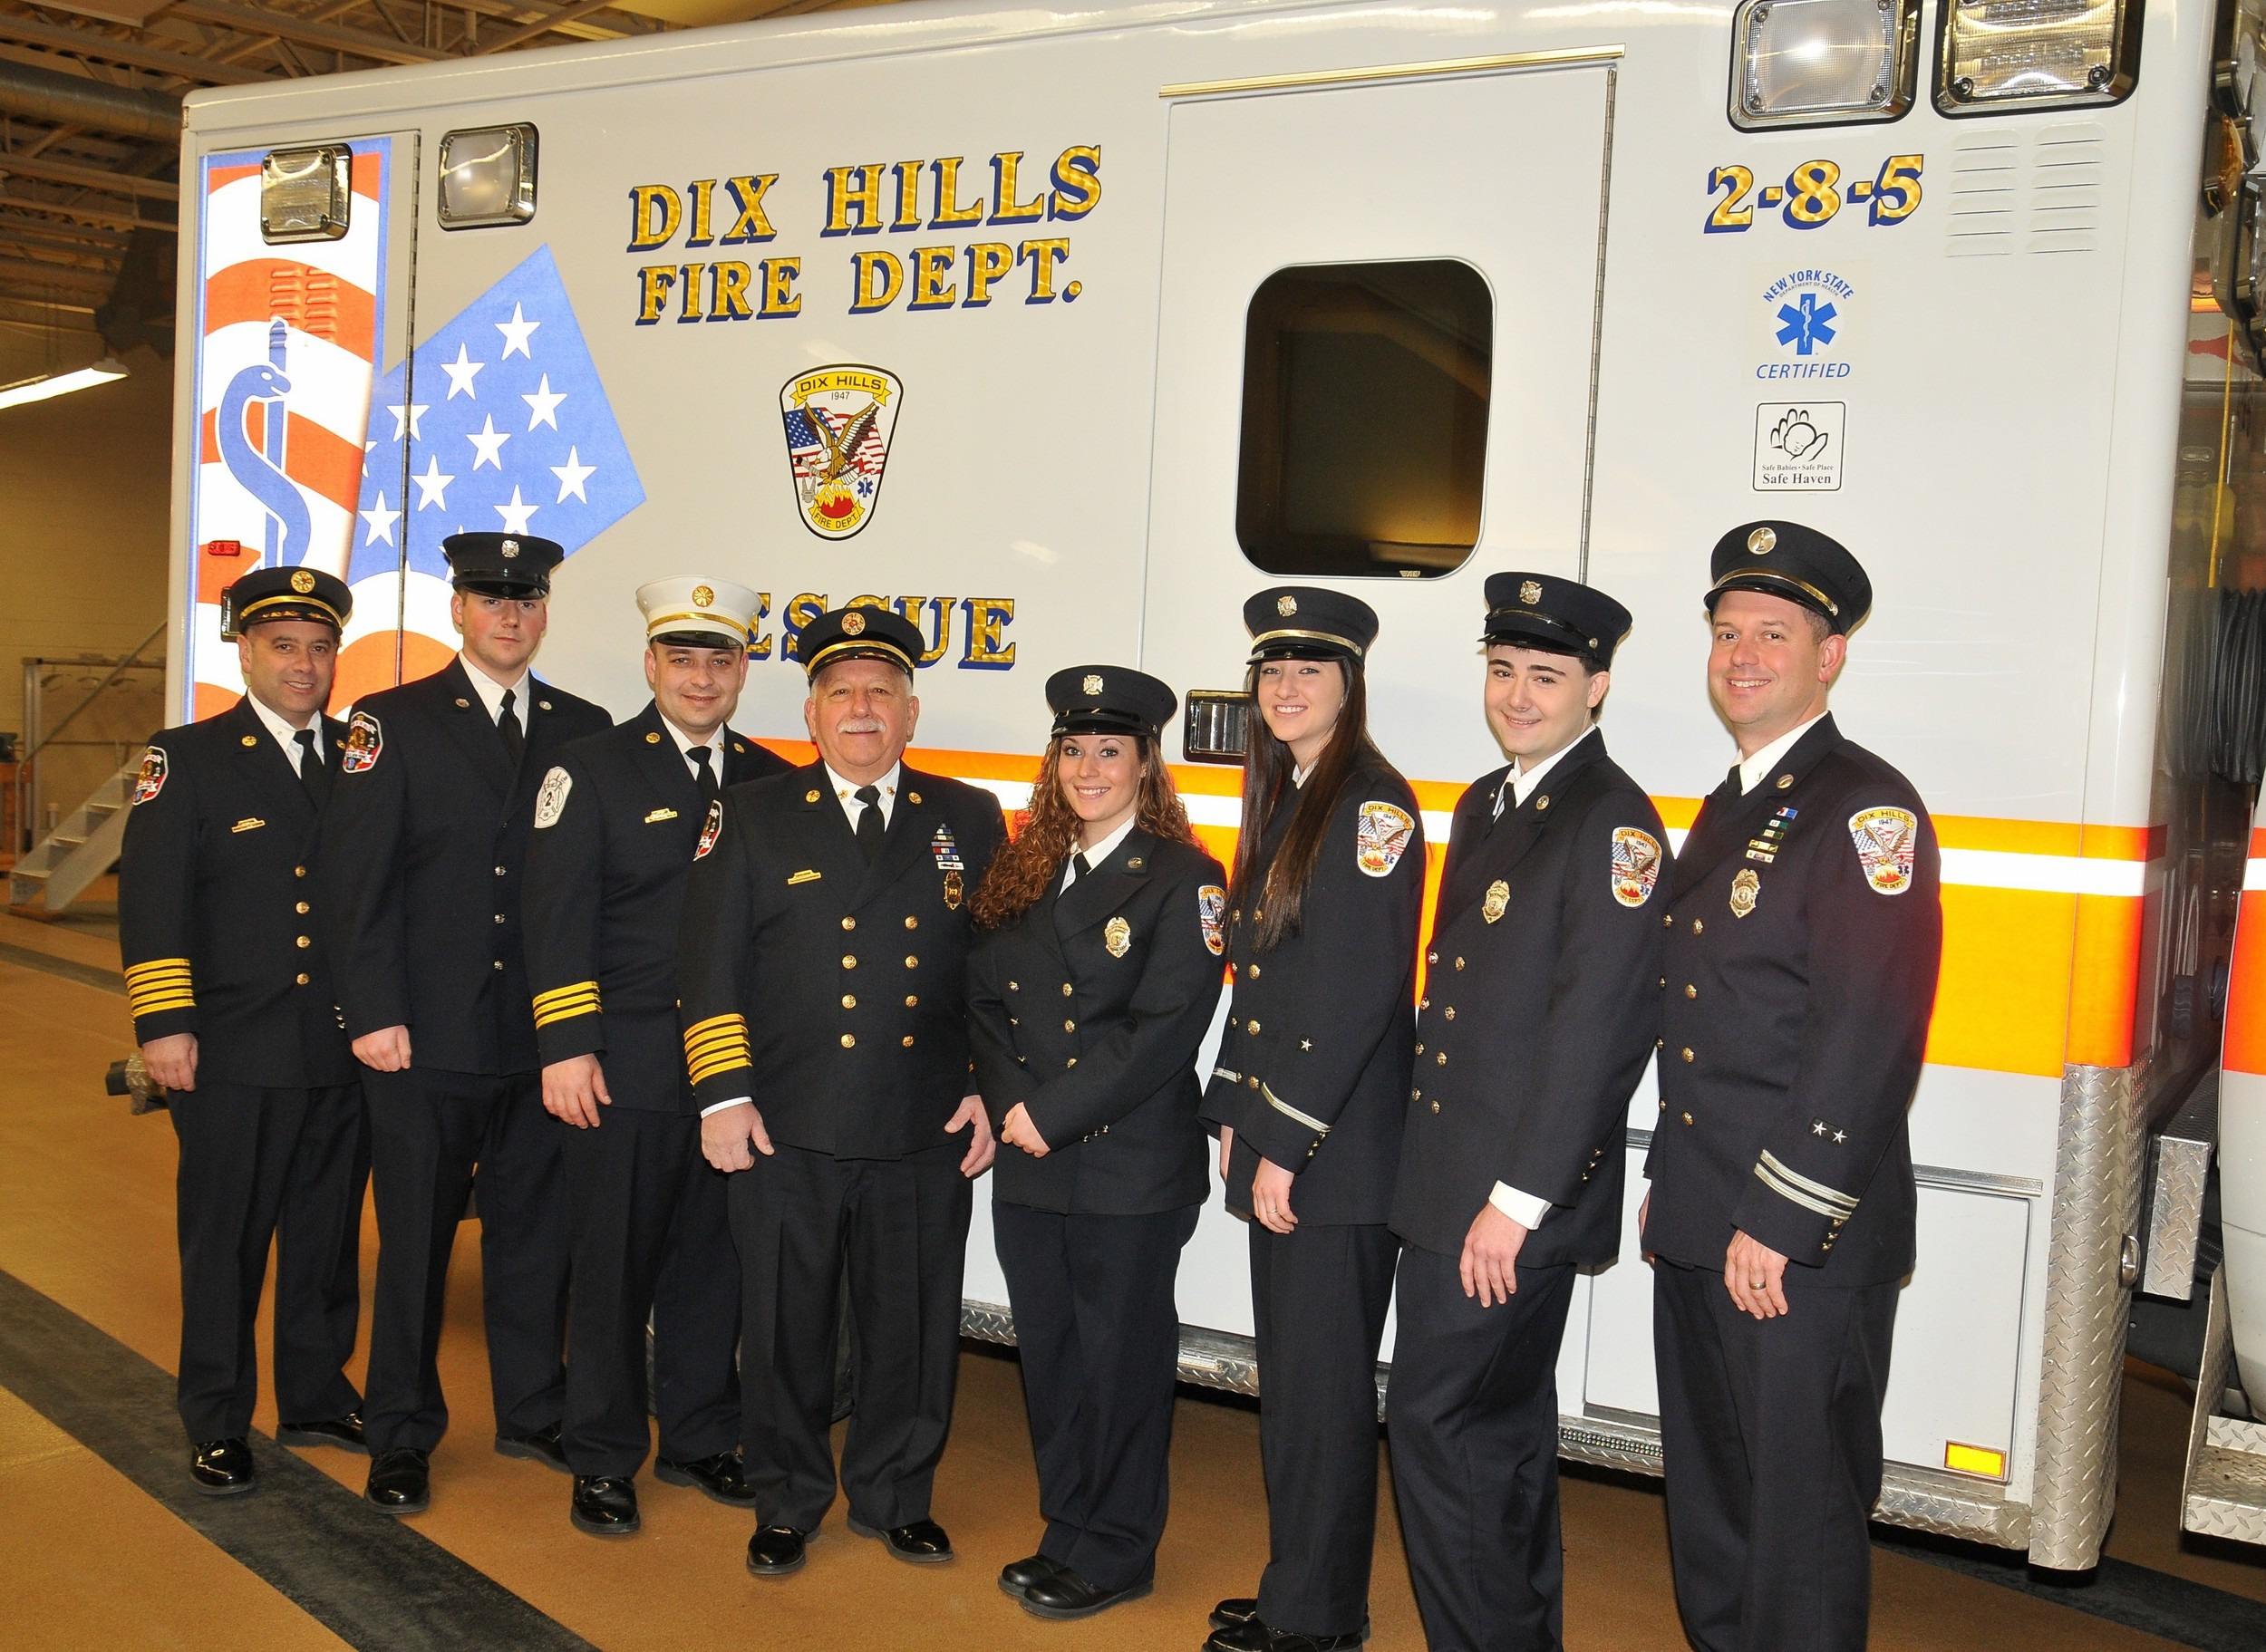 Pictured from left, Dix Hills Chief Bill Stio, Matt Stio, Assistant Chief Tom Napolitano, Ex-Chief Richard Sorrentino, Megan Pereira, Jessica Mattes, John Marshall and Scott DiPino were recently honored for rescuing a 60-year-old man in cardiac arrest. Not pictured, but honored, were Mike Englander, Travis Mielko and Ralph Oswald. (Photo by Steve Silverman)